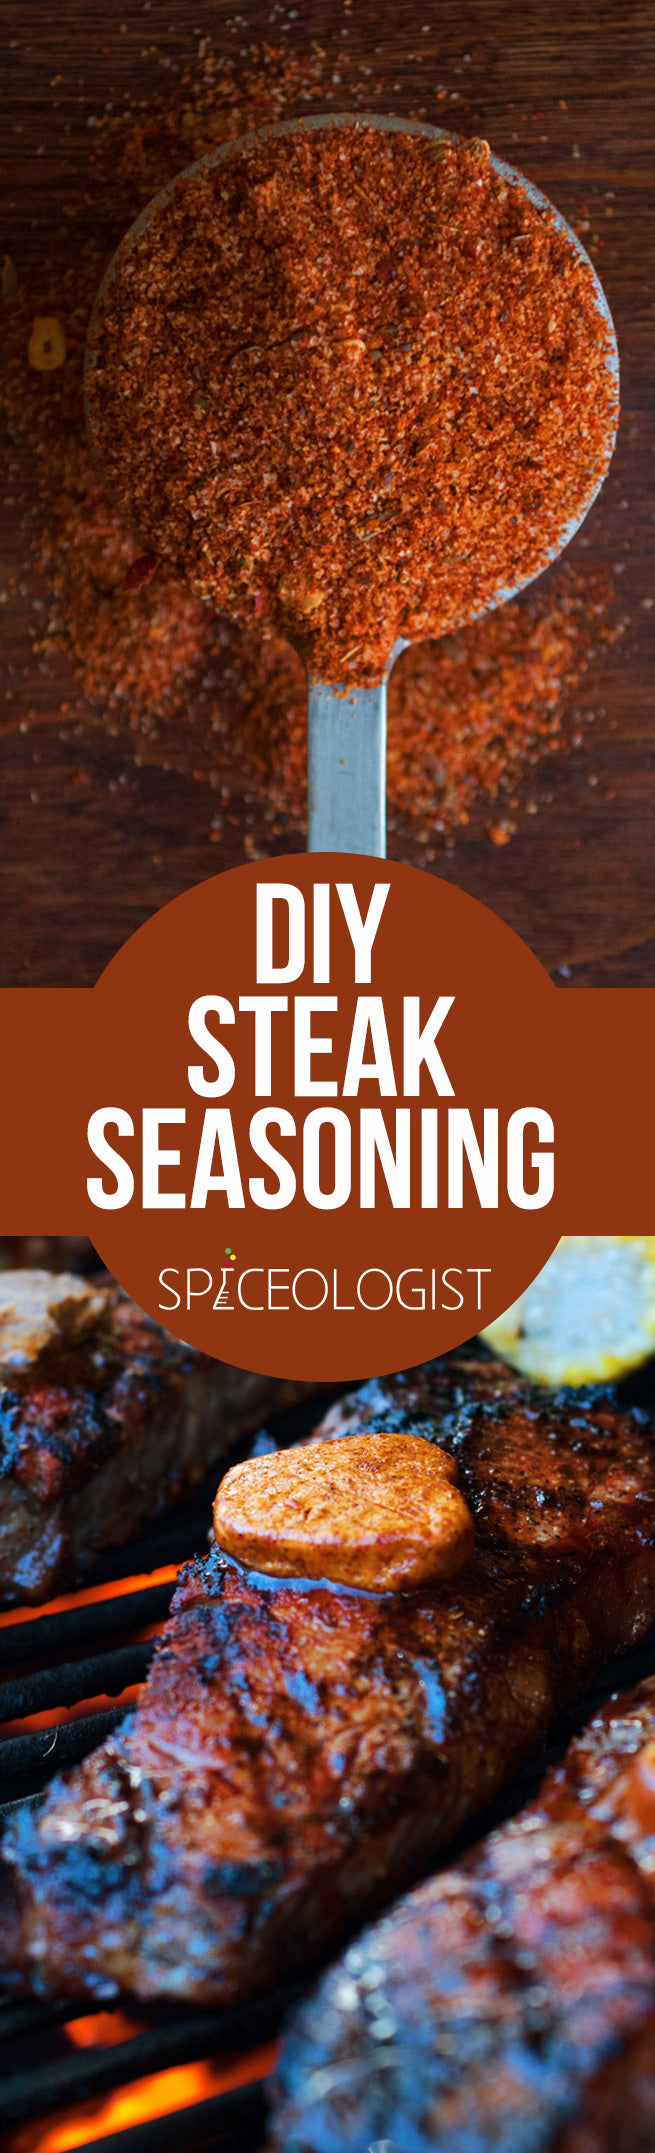 DIY Steak Seasoning | spiceologist.com